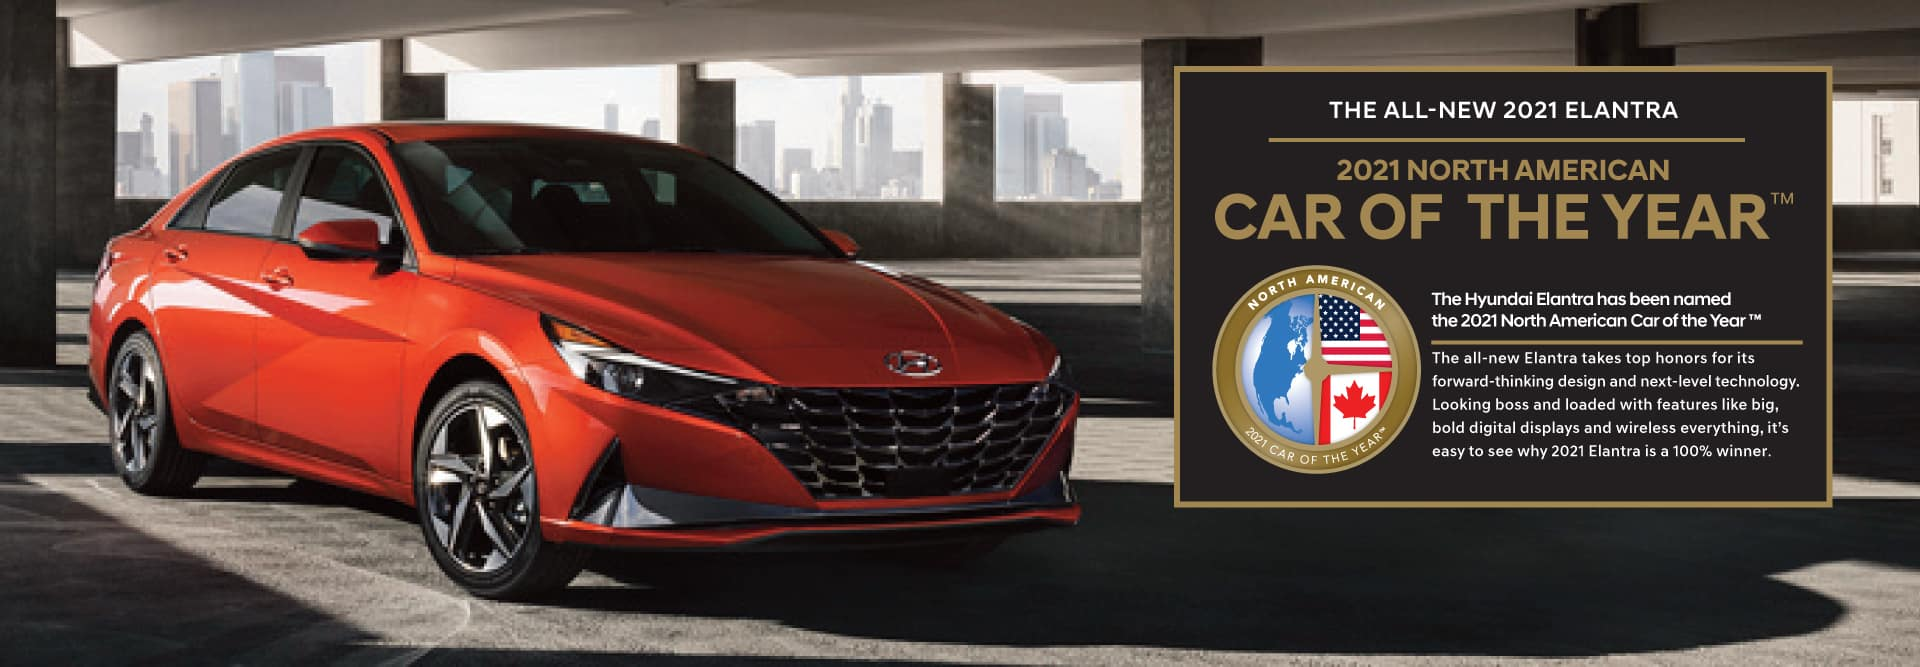 2021-january-elantra-car-of-year